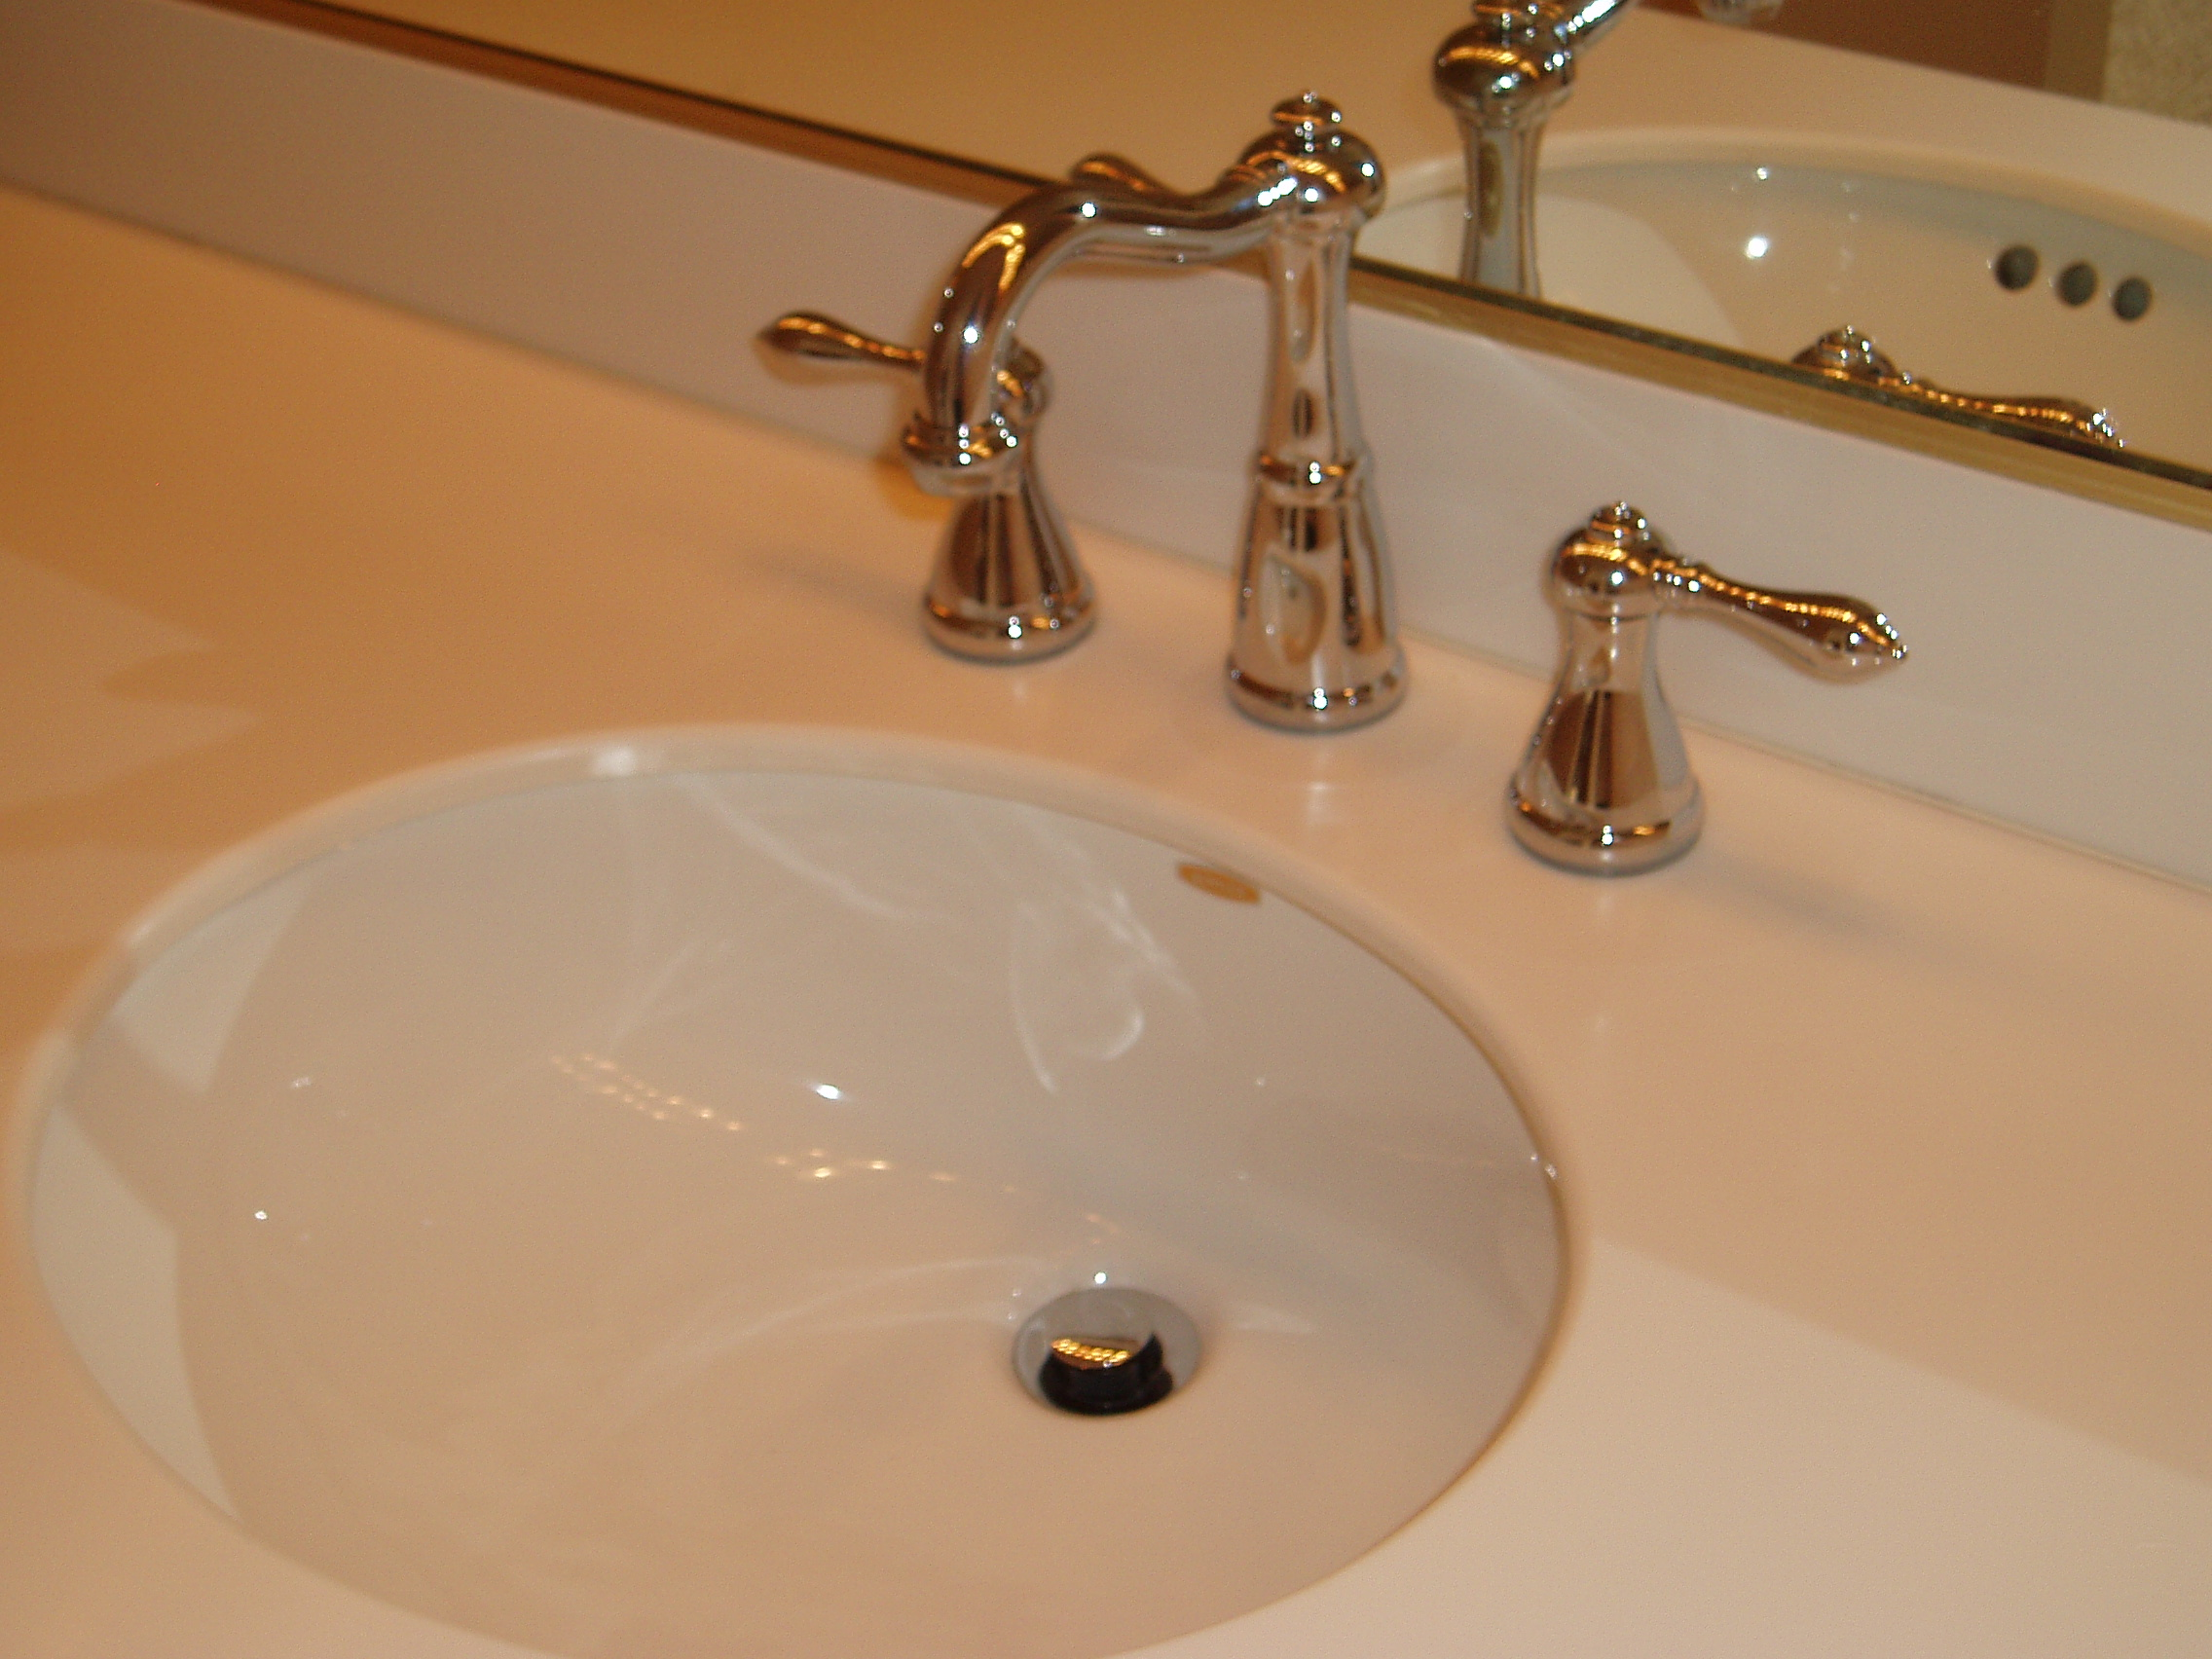 install design lovely luxury size installing bathroom fresh h new of ideas to hose adapter sink large faucet full home